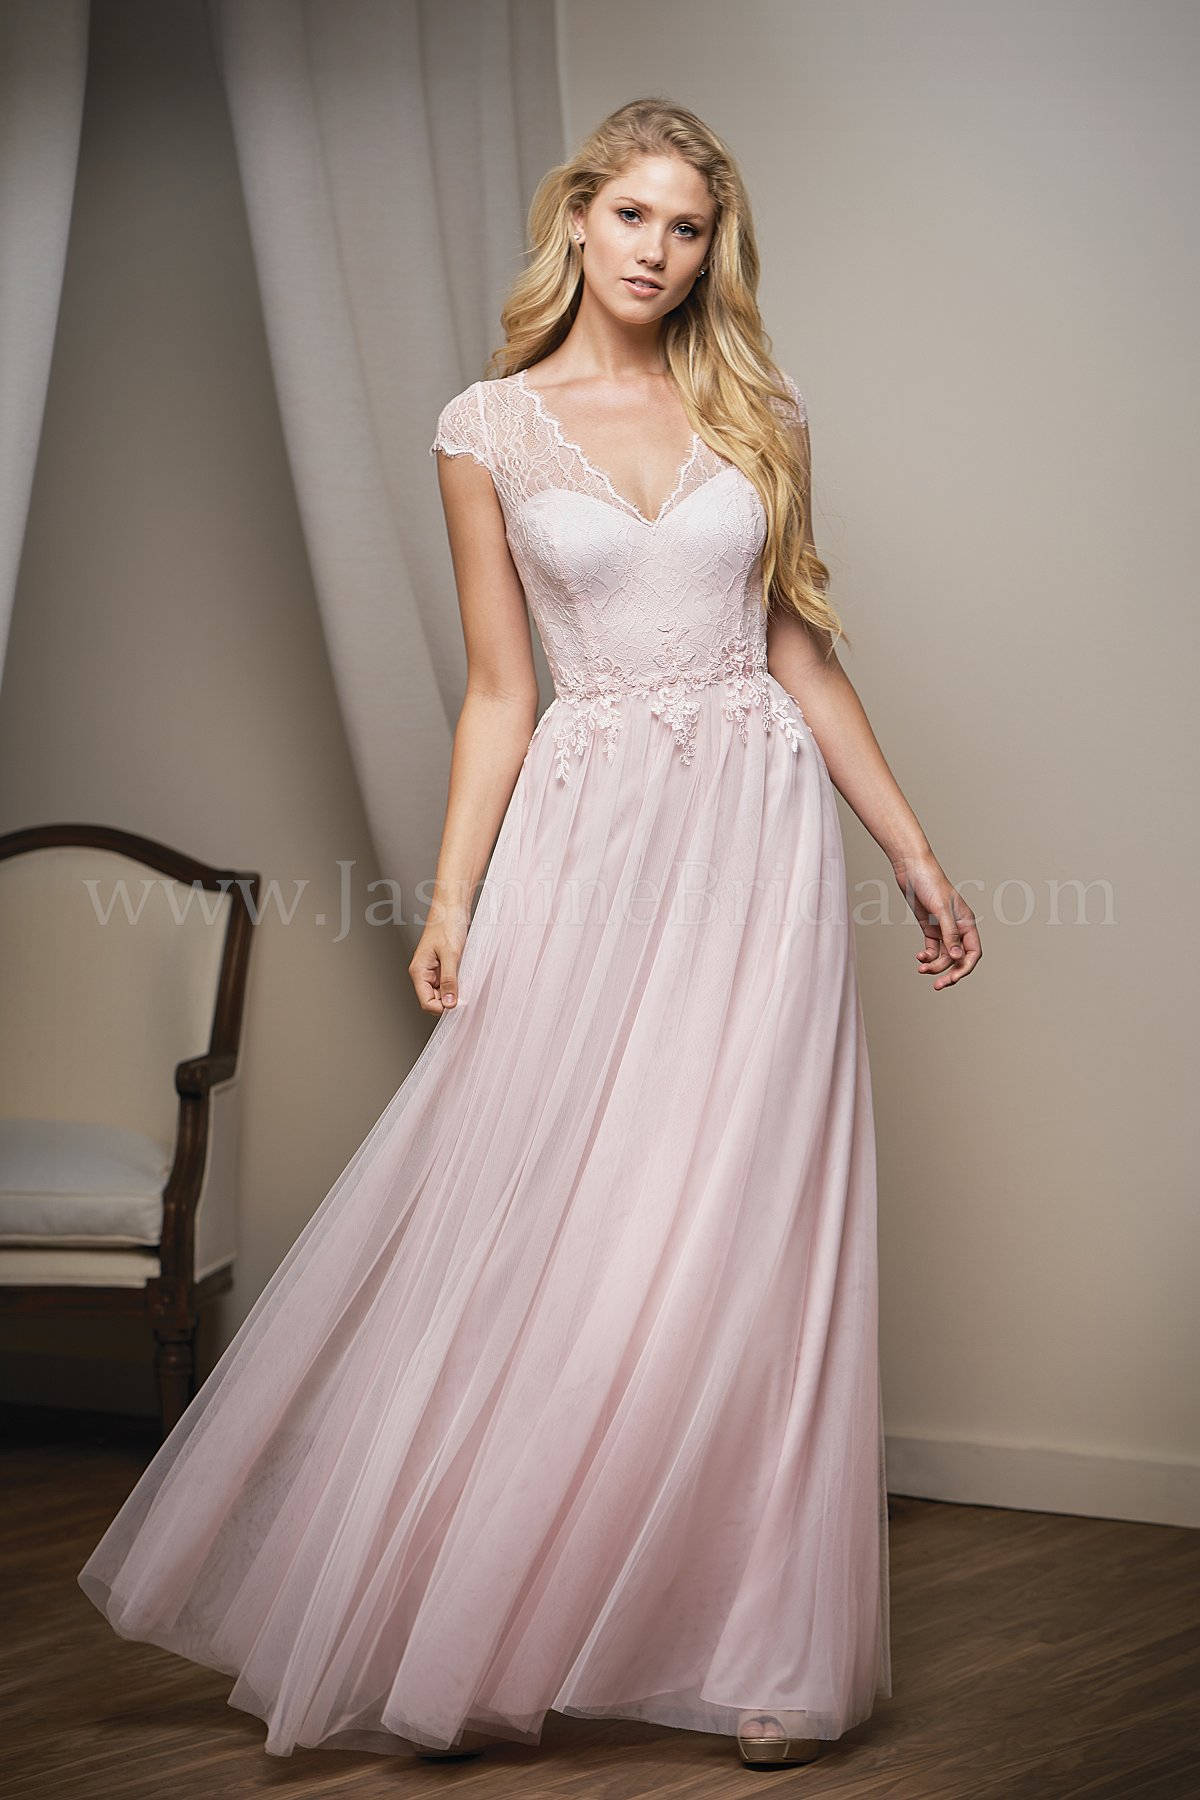 bridesmaid-dresses-L204010-F